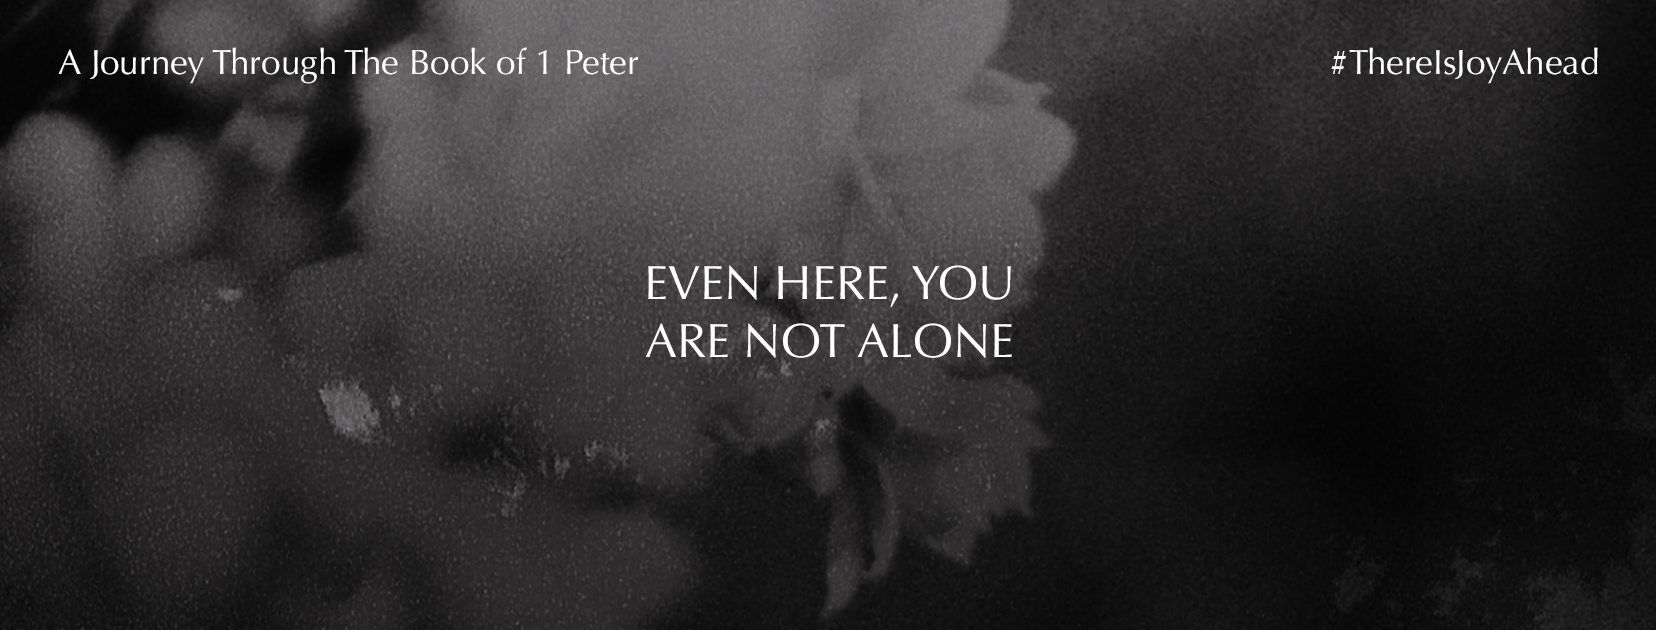 Not Alone Facebook Cover - 1656x630 (JPG)